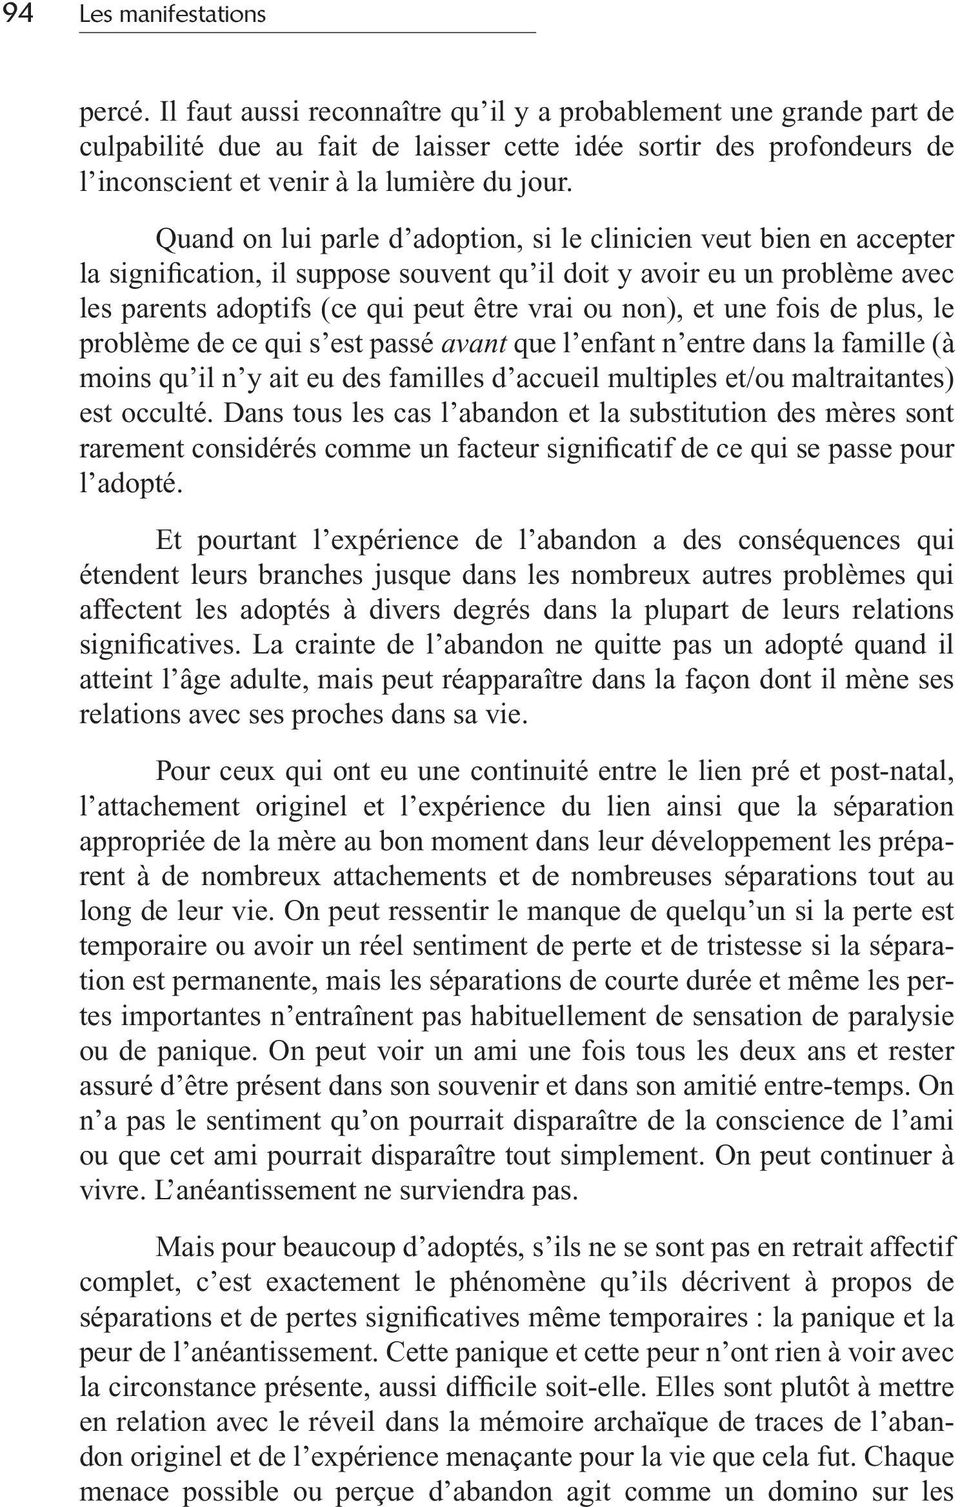 Quand on lui parle d adoption, si le clinicien veut bien en accepter la signification, il suppose souvent qu il doit y avoir eu un problème avec les parents adoptifs (ce qui peut être vrai ou non),